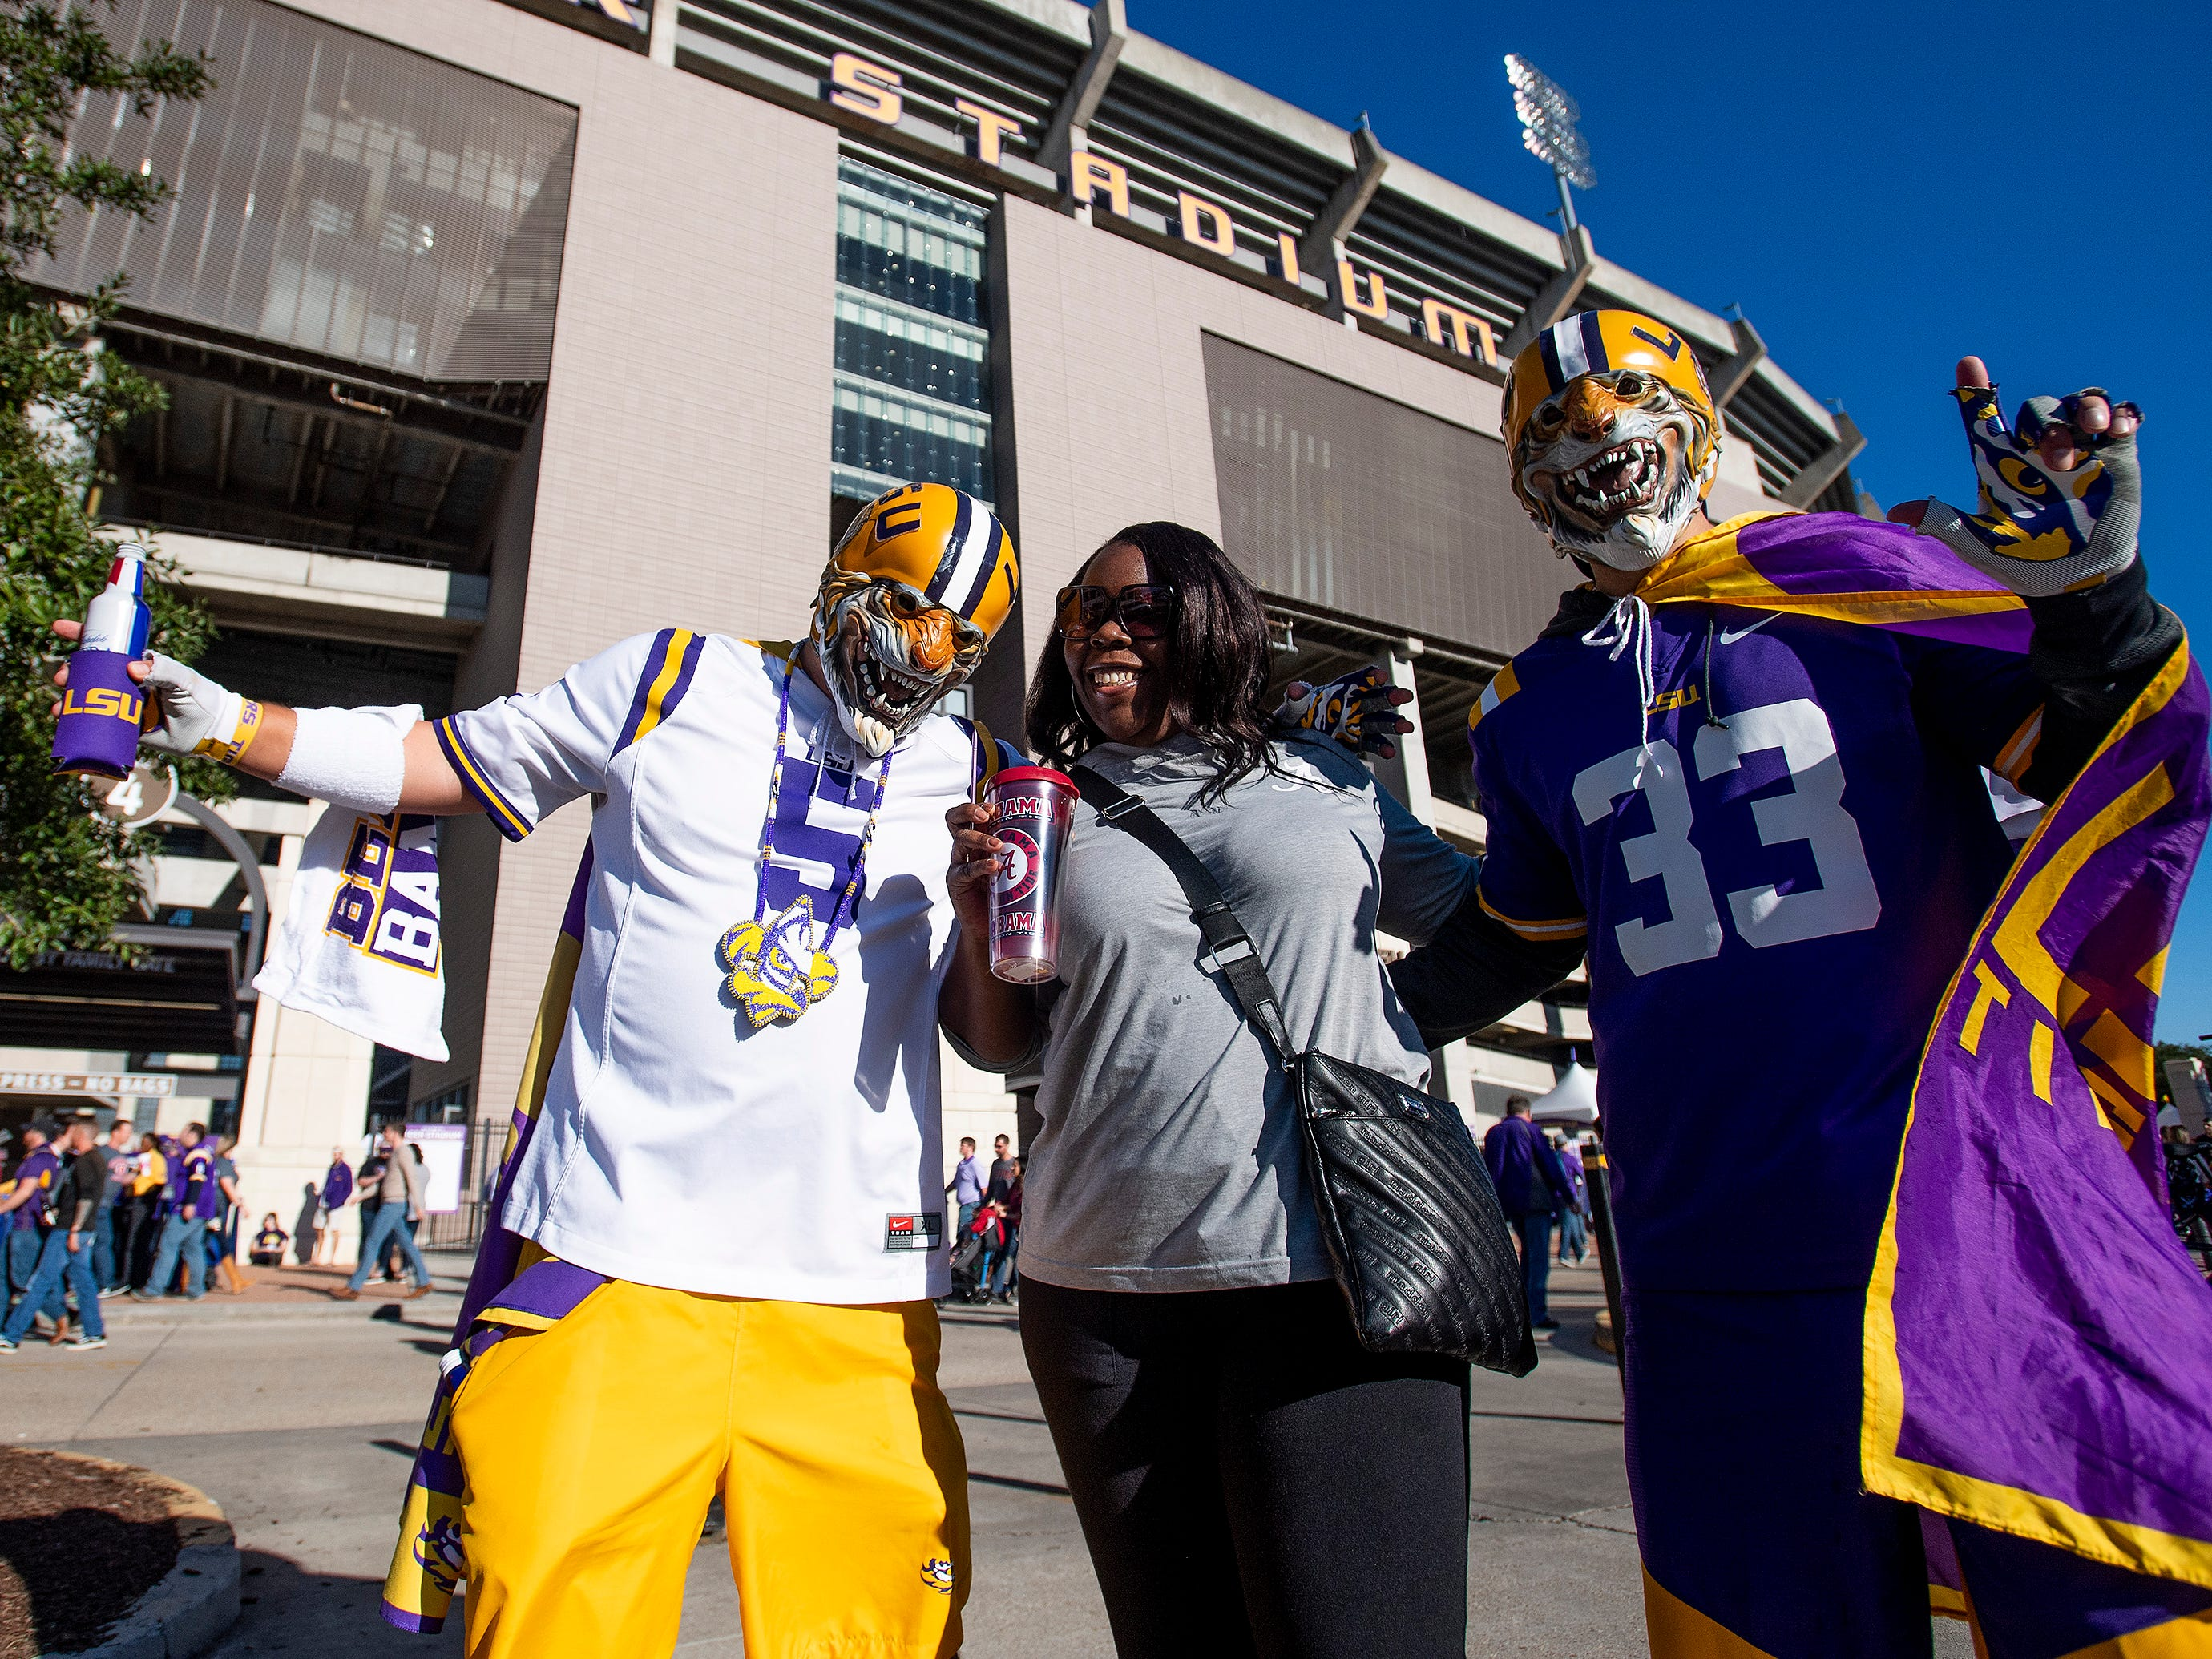 Alabama fan Terita Patterson is greeted by LSU fans before the Alabama vs. Louisiana State football game at Tiger Stadium in Baton Rouge, La., on Saturday November 3, 2018.